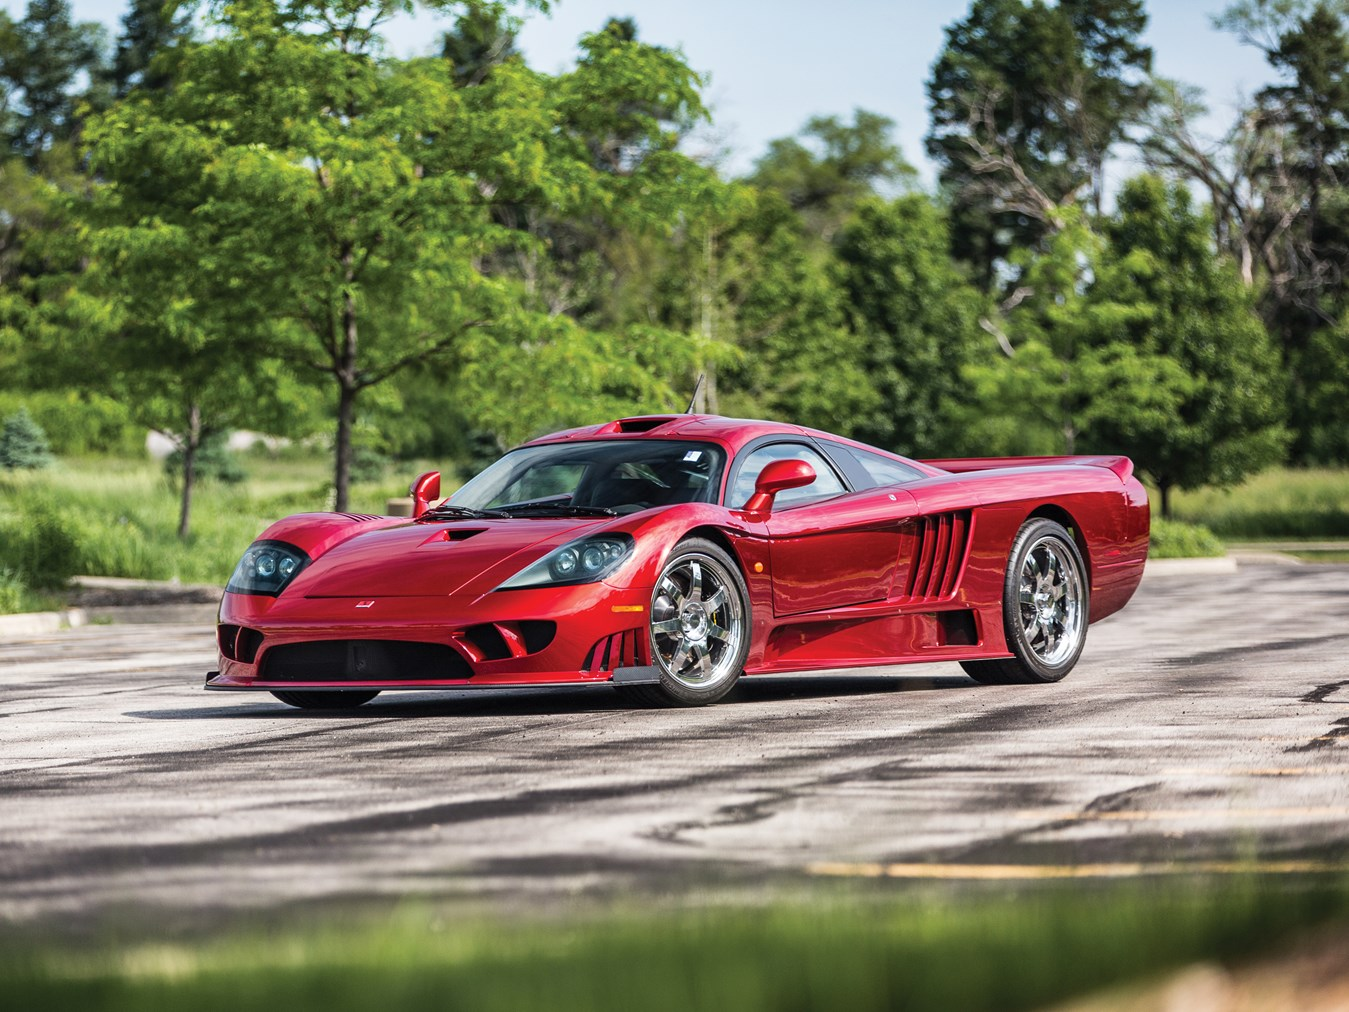 saleen s7 2006 750 hp twin turbo for sale rm sothebys auction july. Black Bedroom Furniture Sets. Home Design Ideas